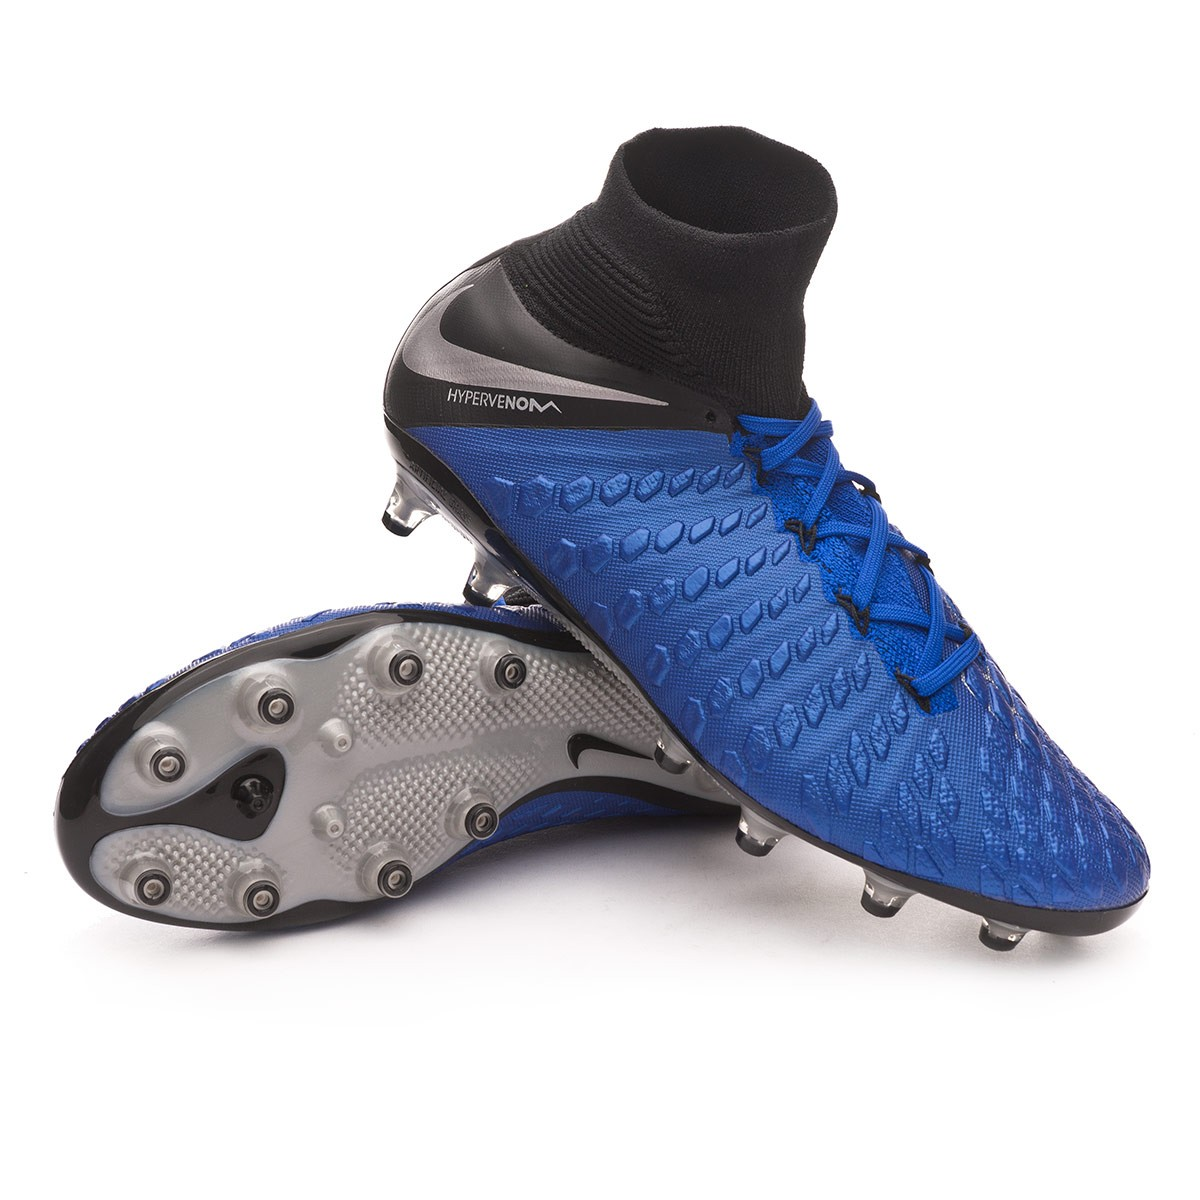 wholesale dealer 61750 69cd4 Bota Hypervenom Phantom III Elite DF AG-Pro Racer blue-Metallic  silver-Black-Volt